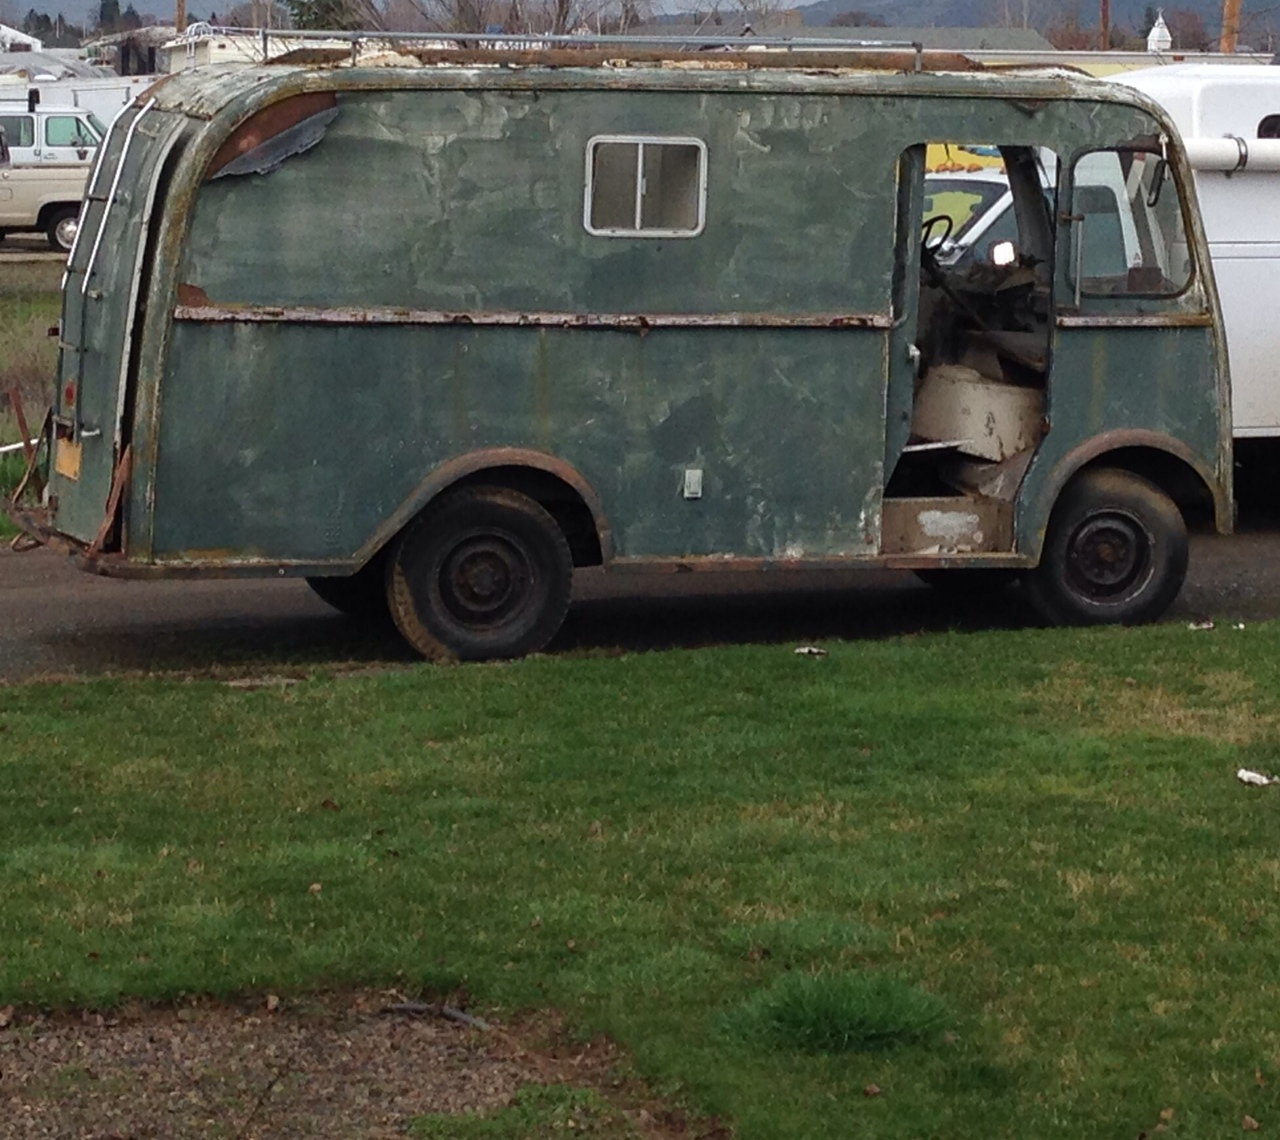 4 Vintage Step Vans Metro GMC Chevy Ford priced to sell   The H.A.M.B.